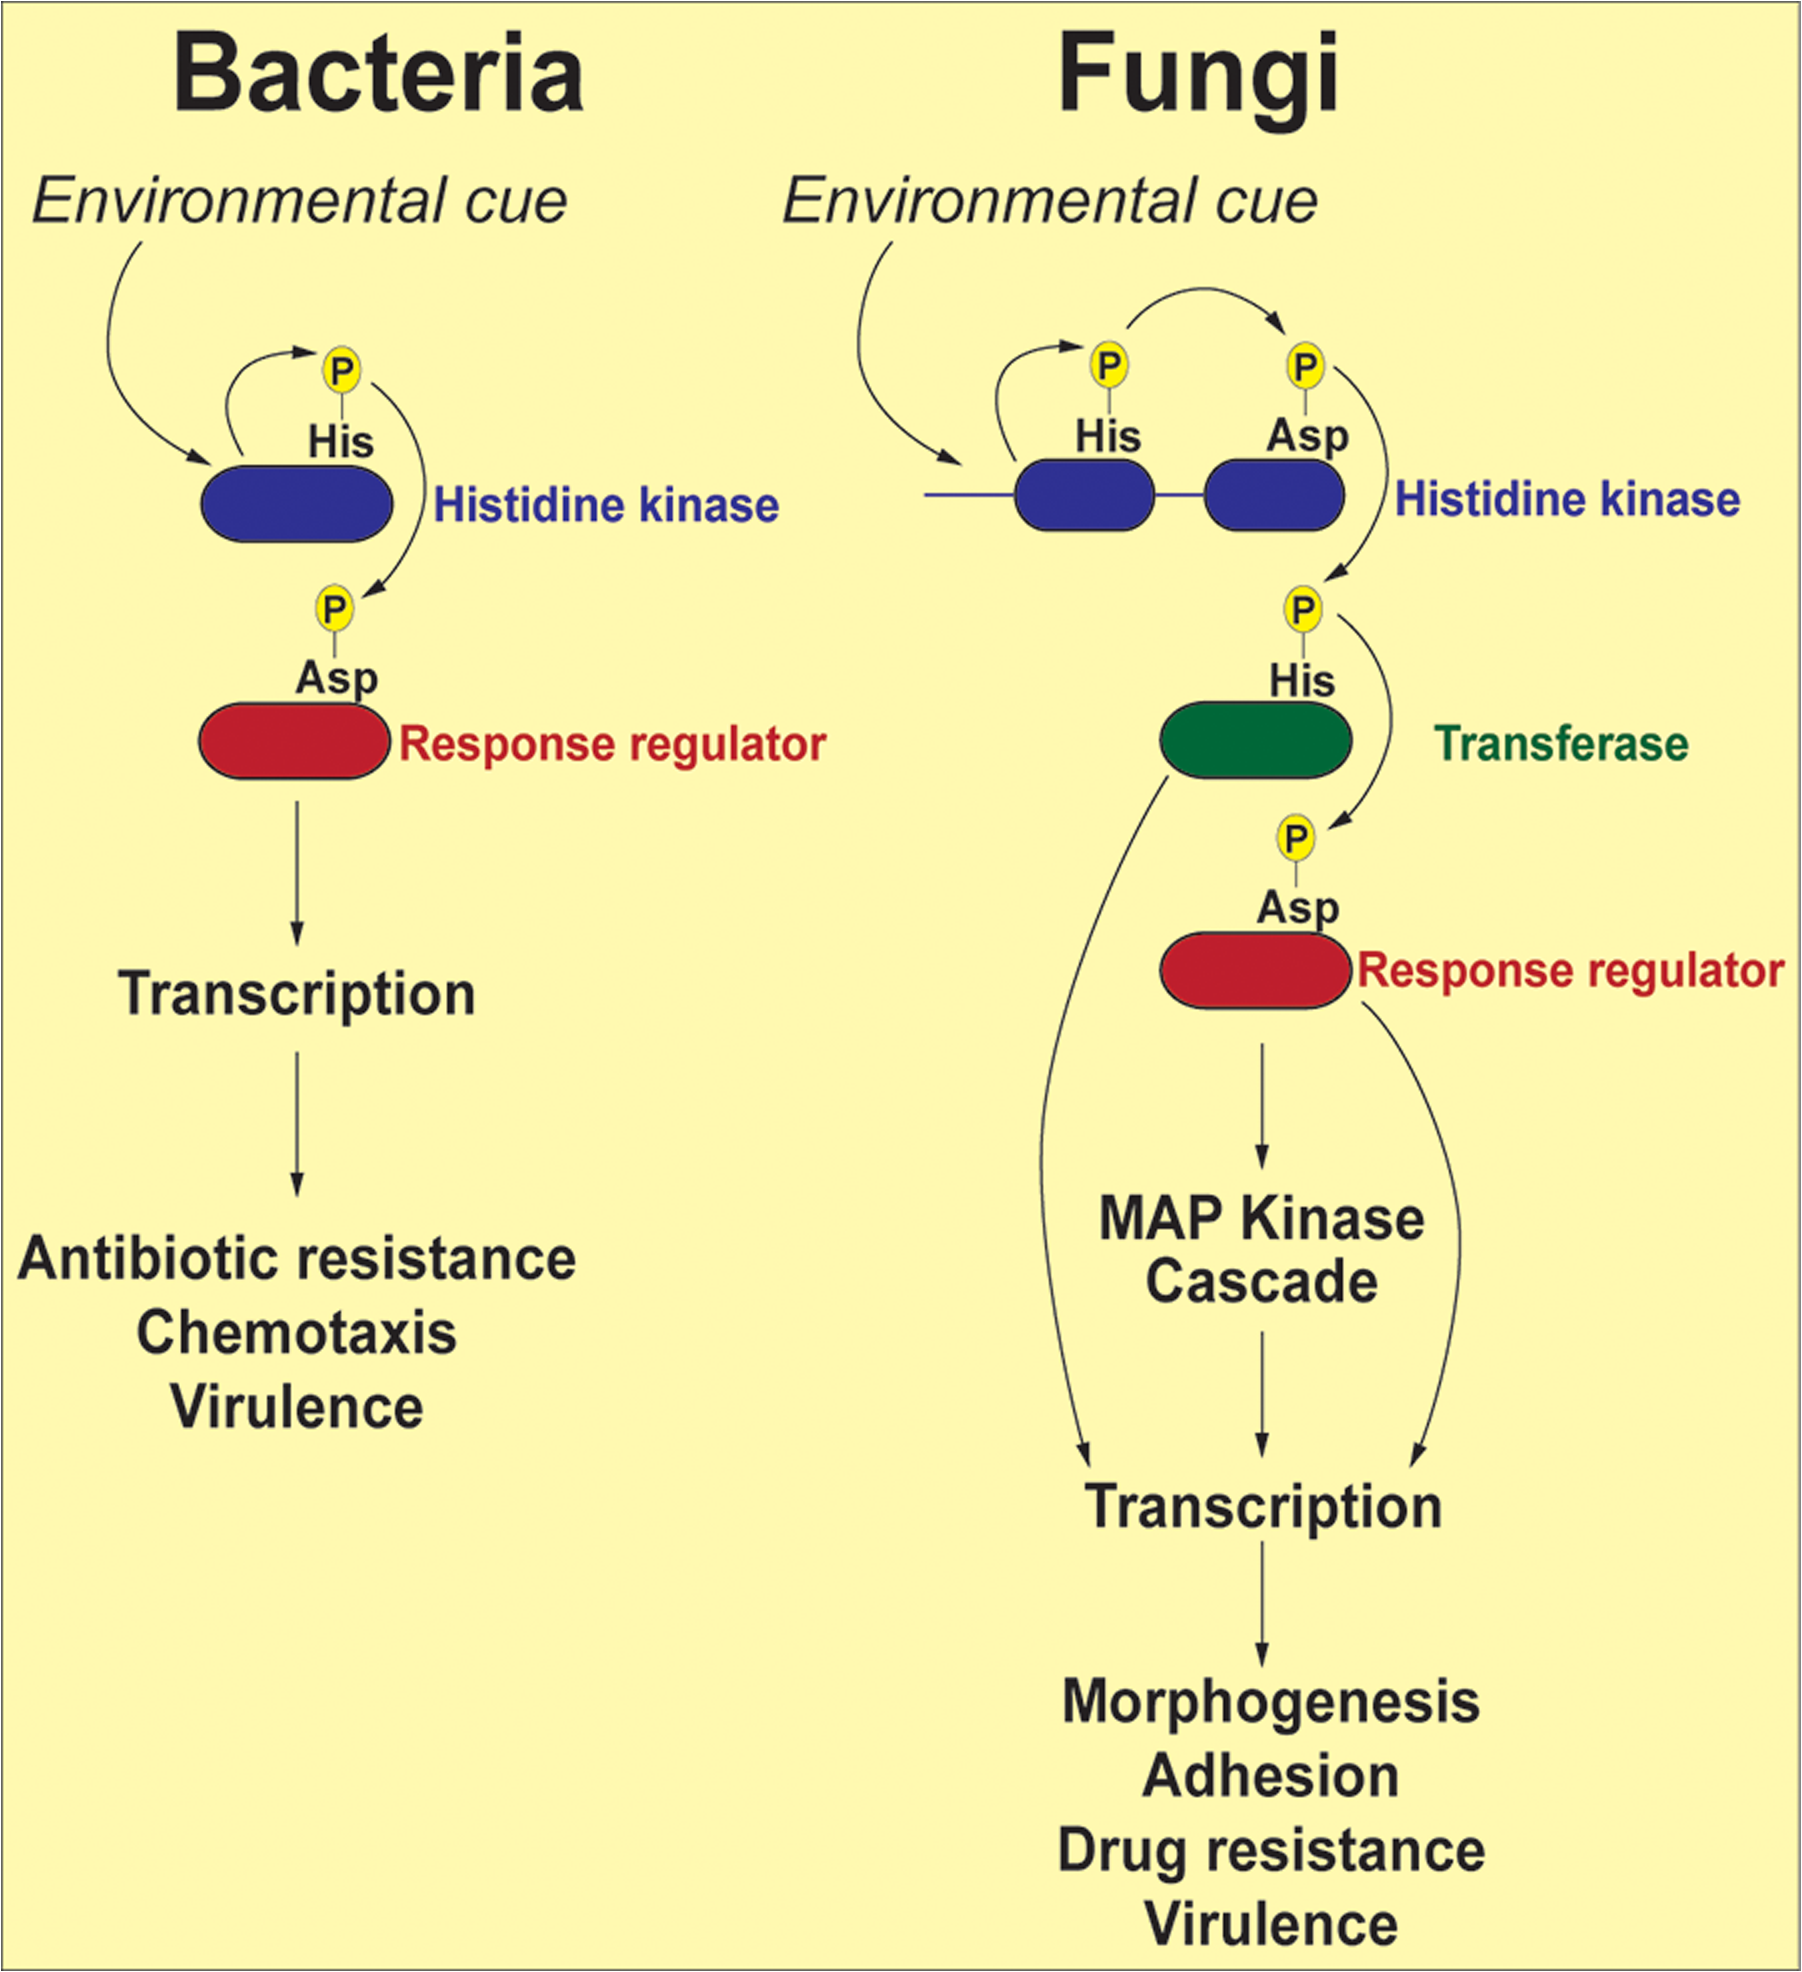 Schematic representation of two-component signal transduction pathways in bacteria and common human fungal pathogens.